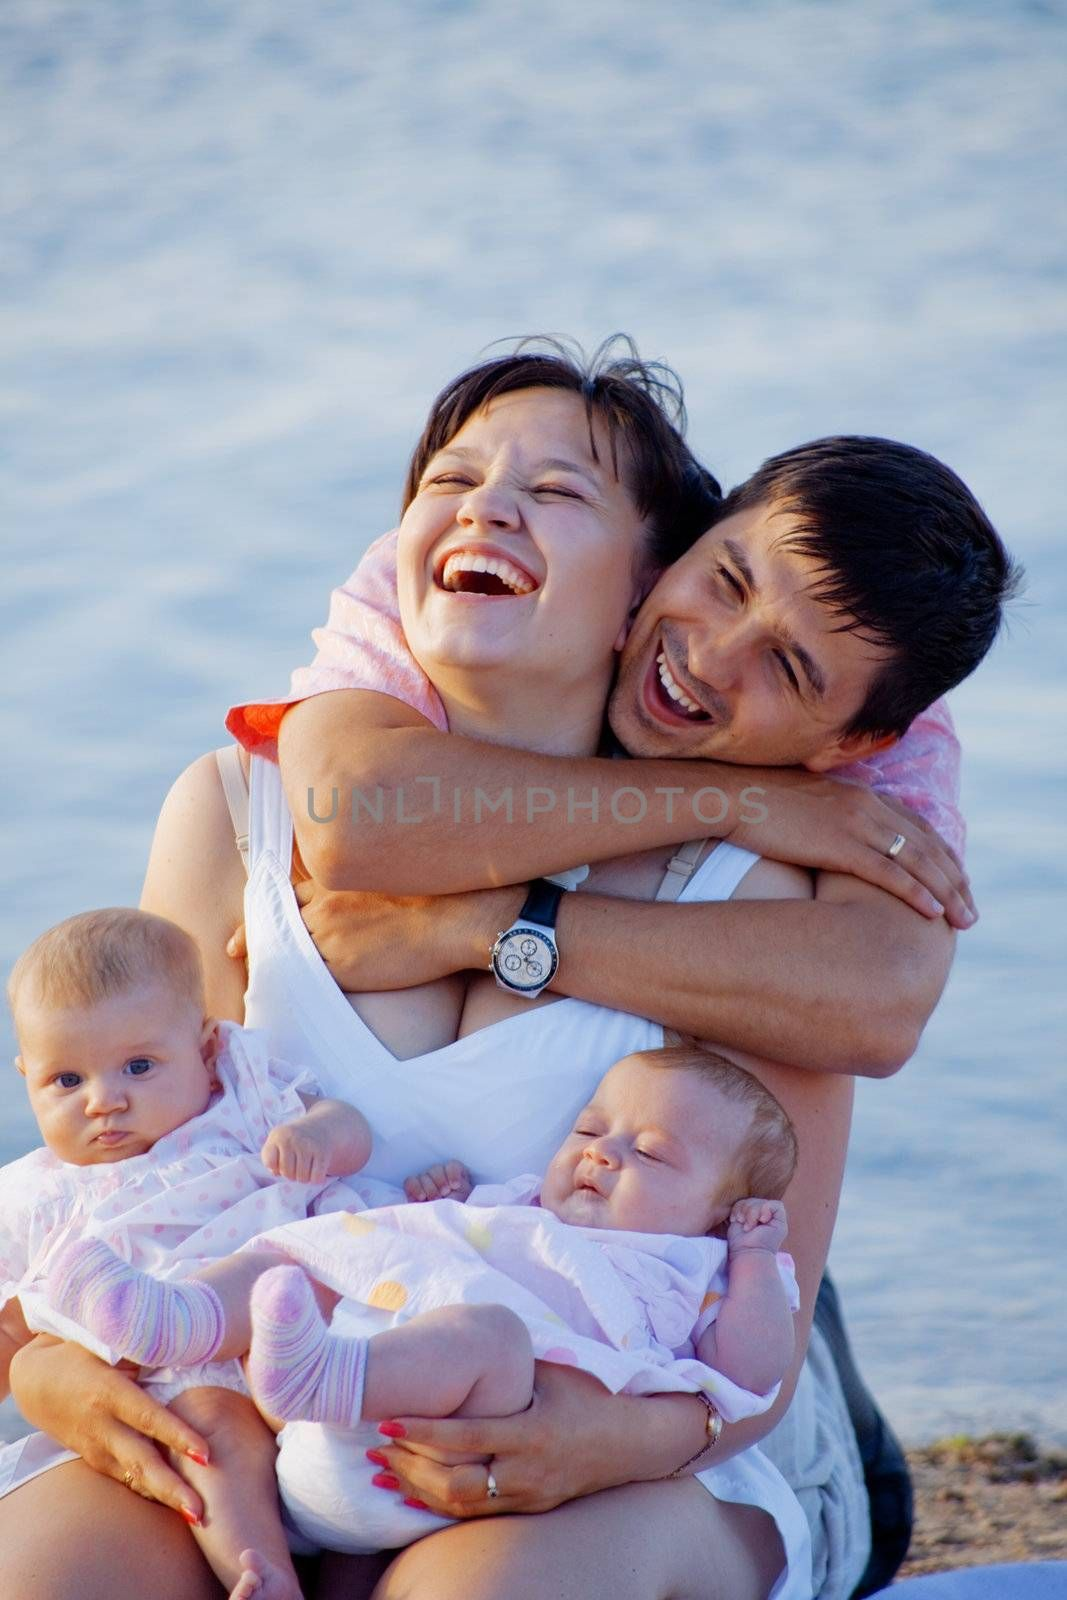 Happy family playing with two infant babies